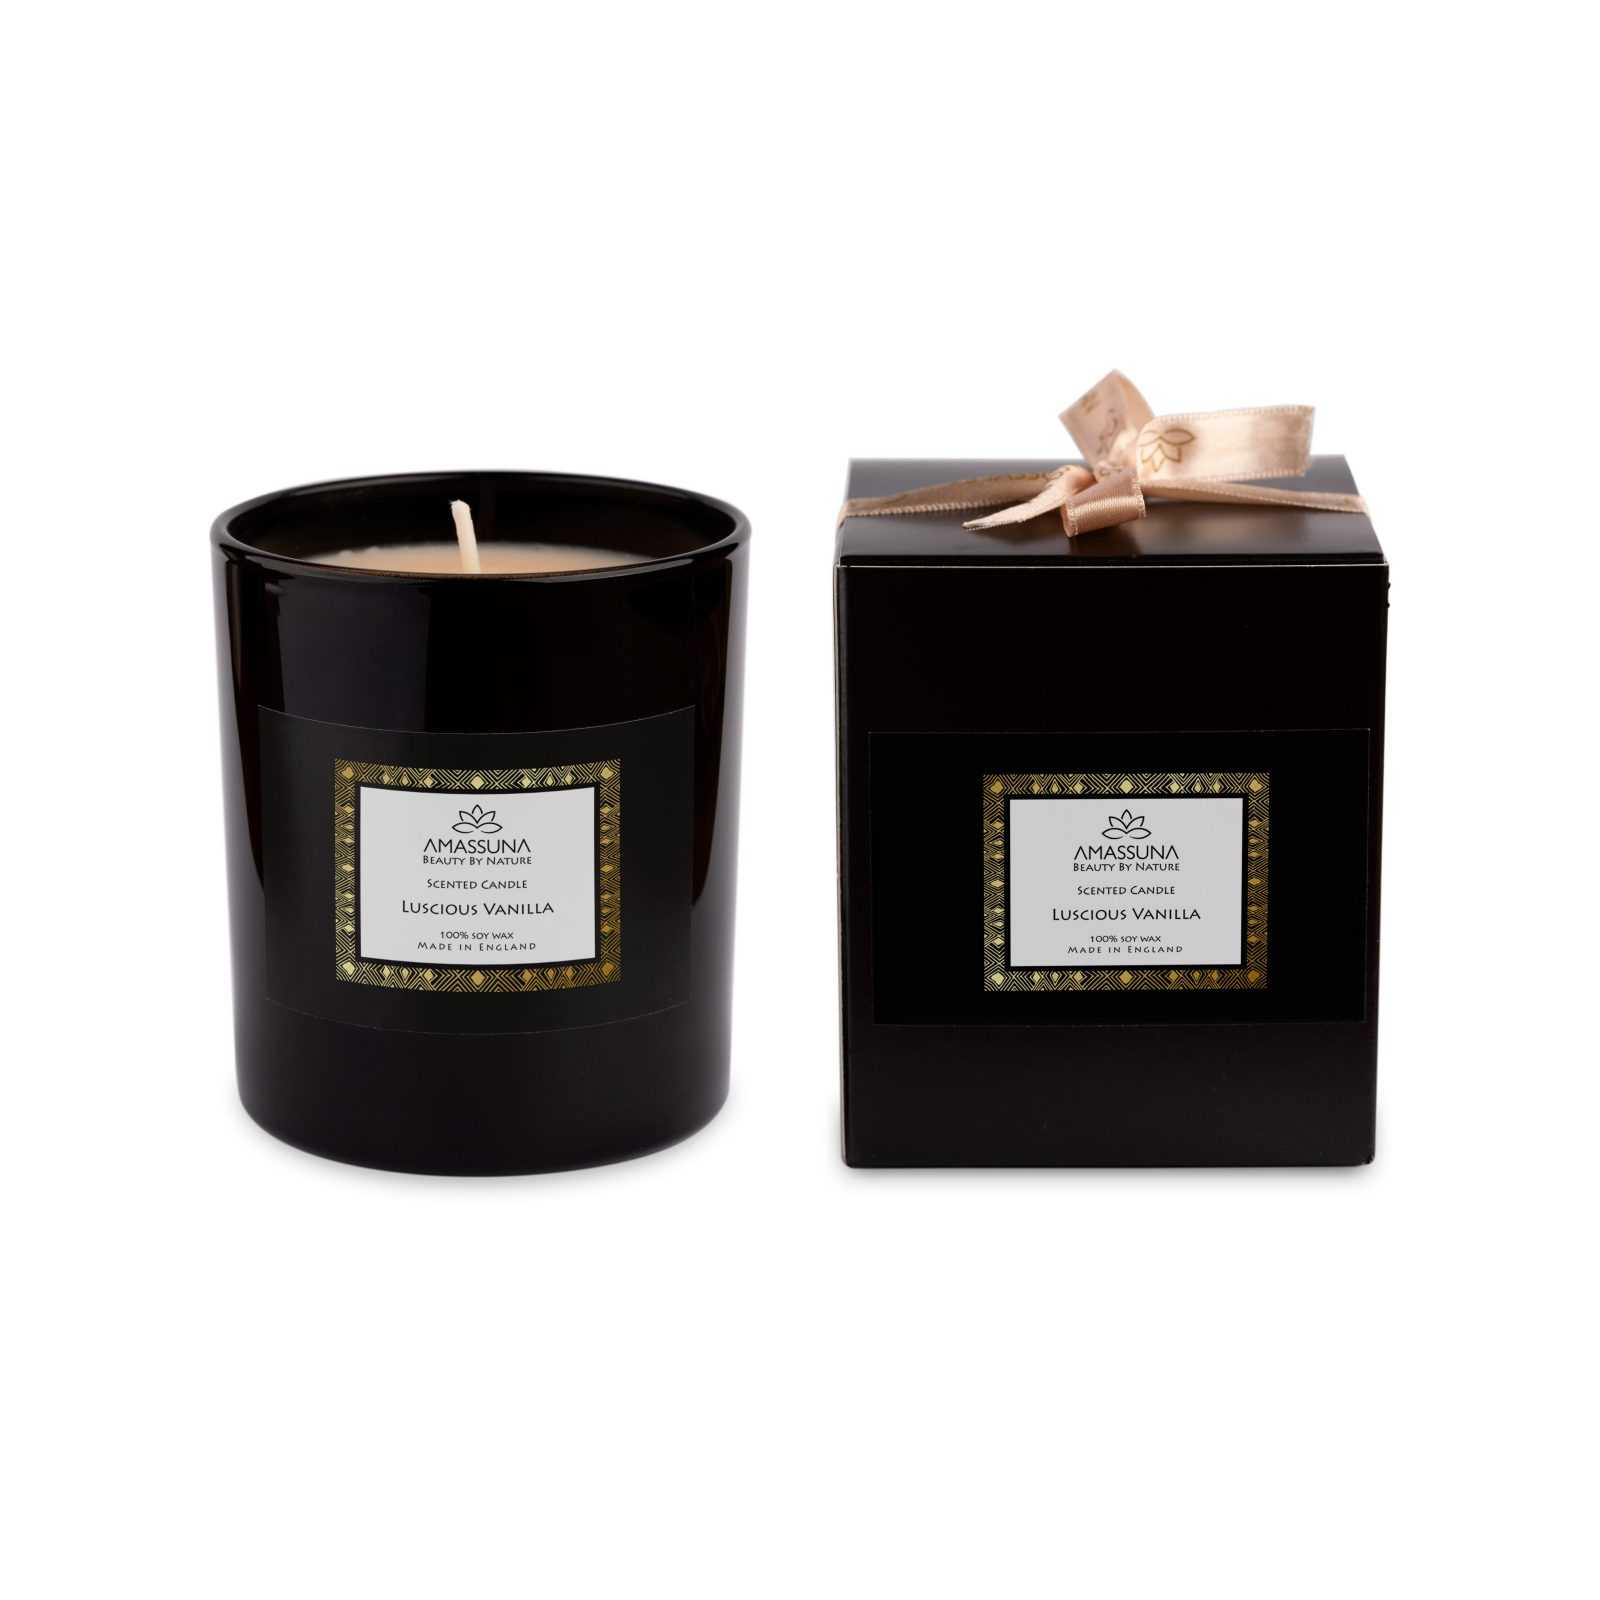 Luxury Soya Wax Candle With Fragrance Oils